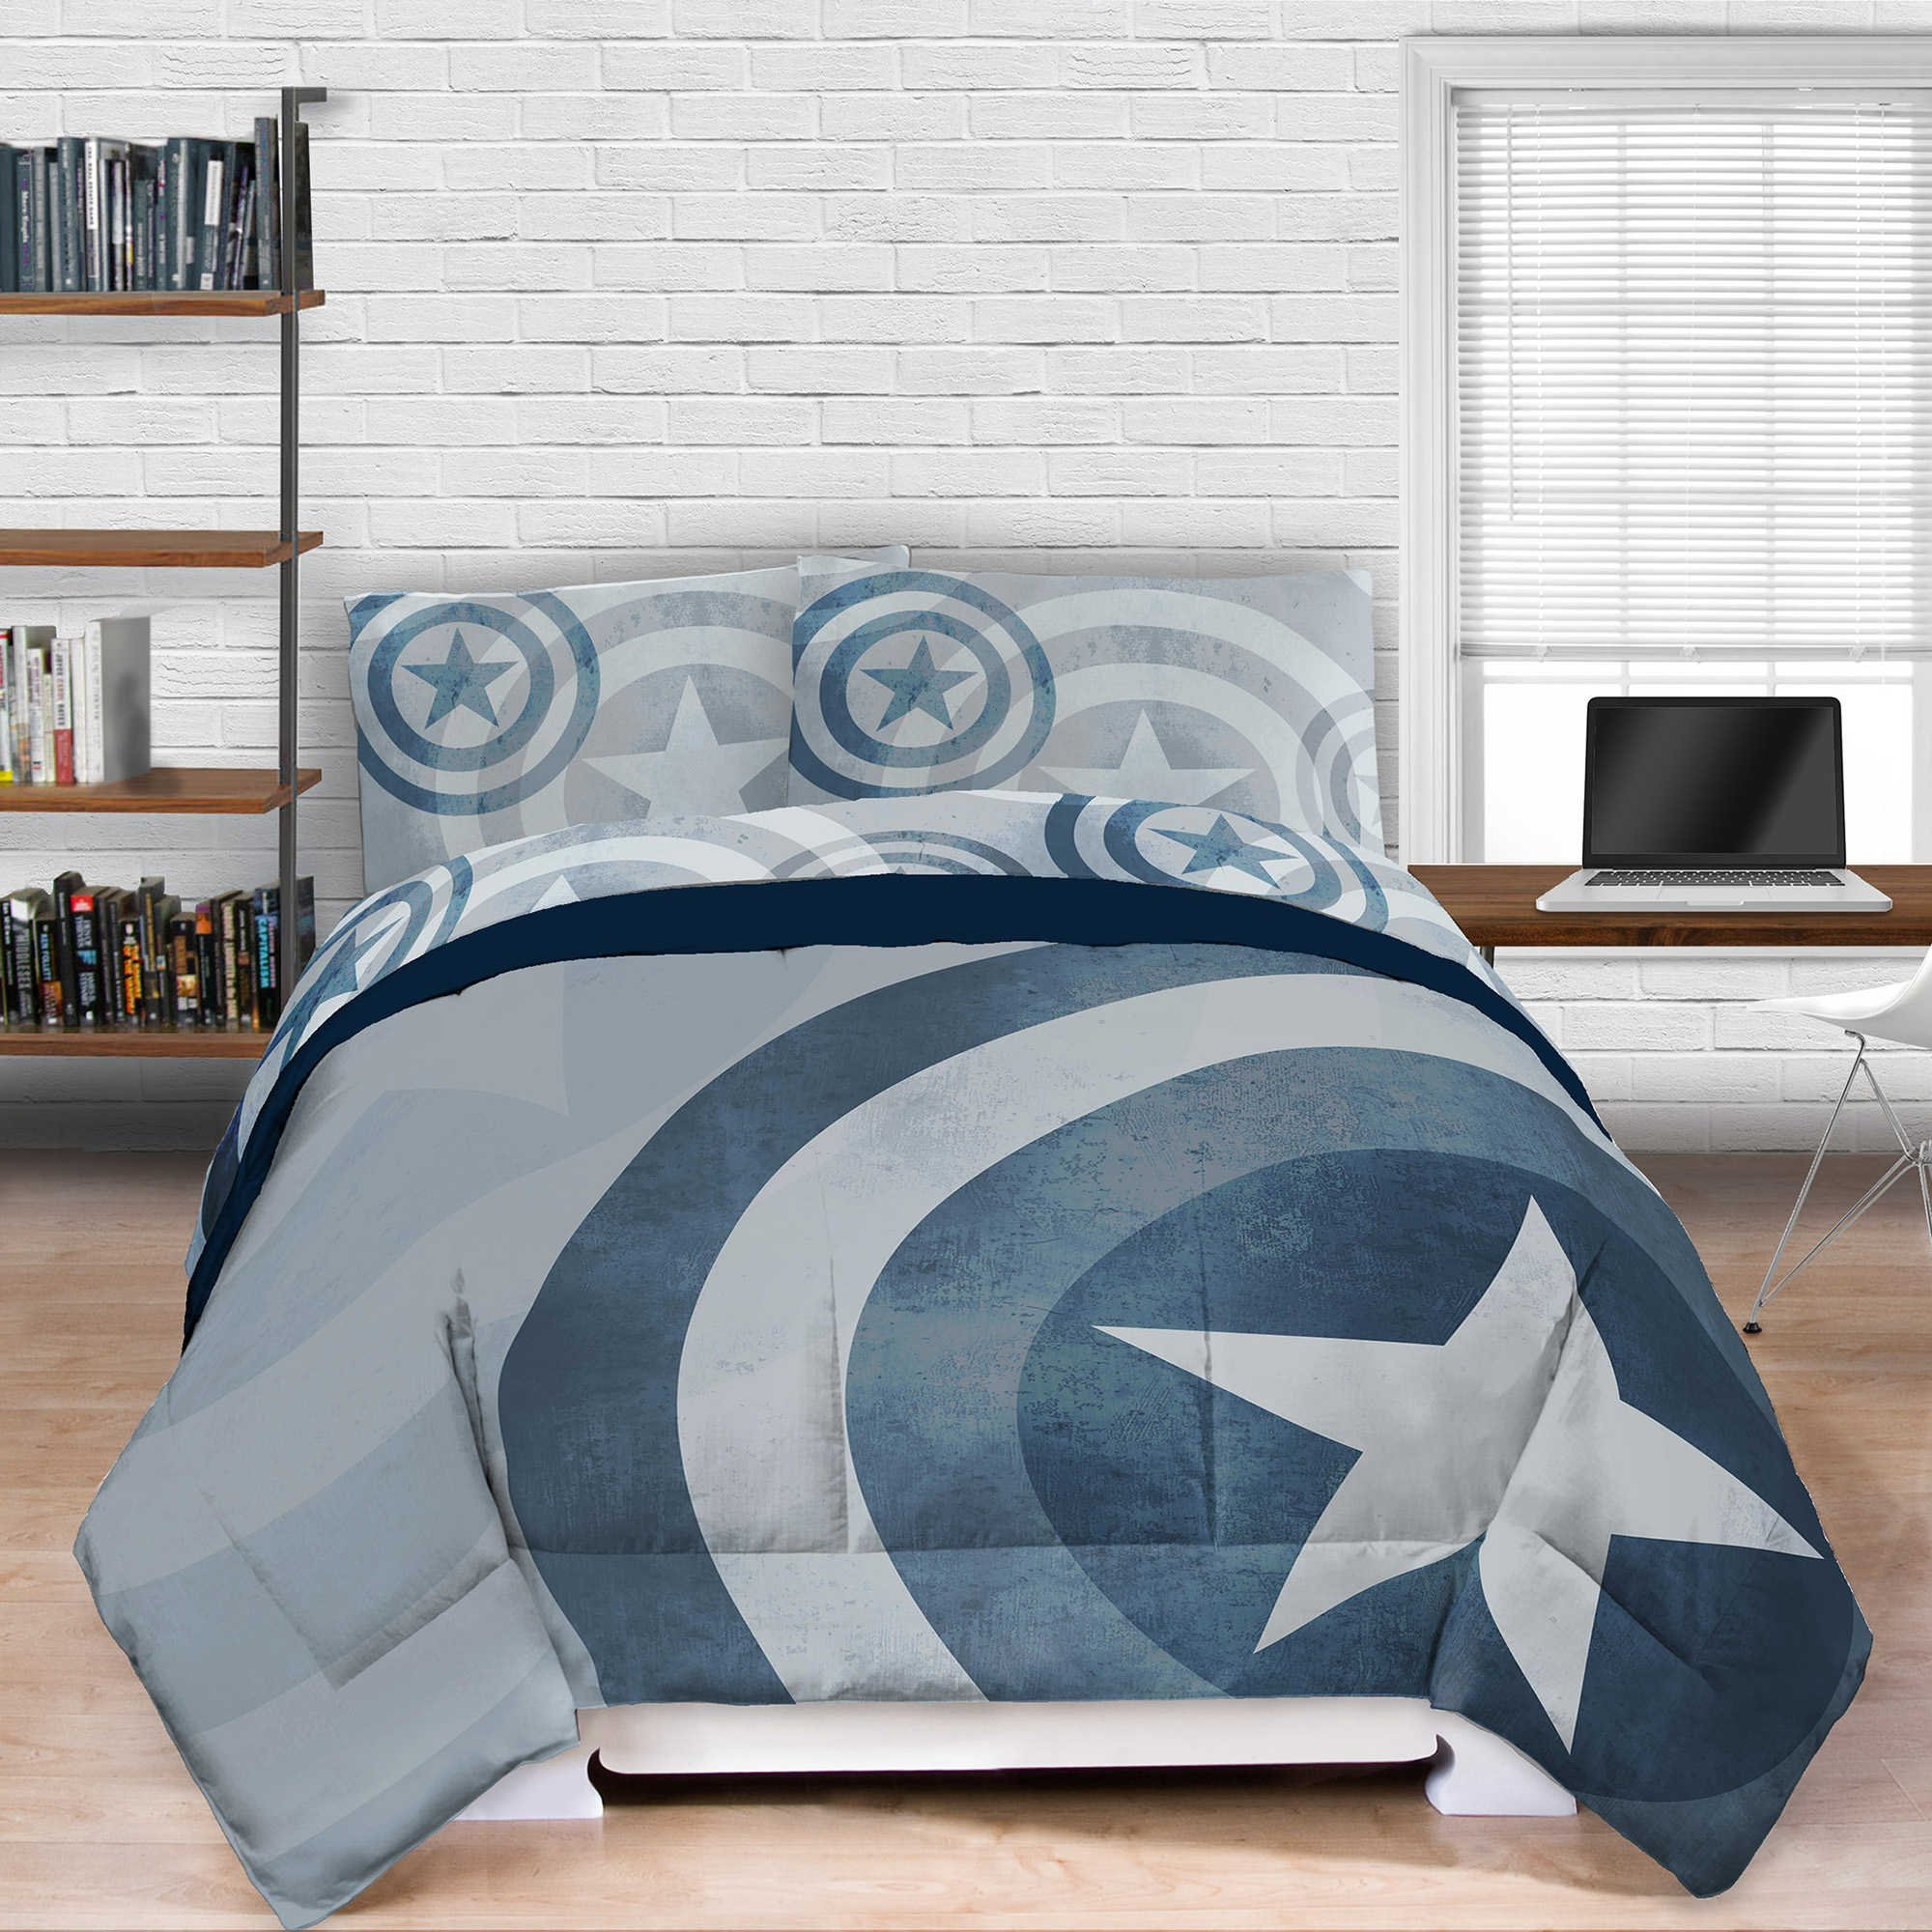 Captain America Lifestyle Shield Comforter full / queen by Marvel